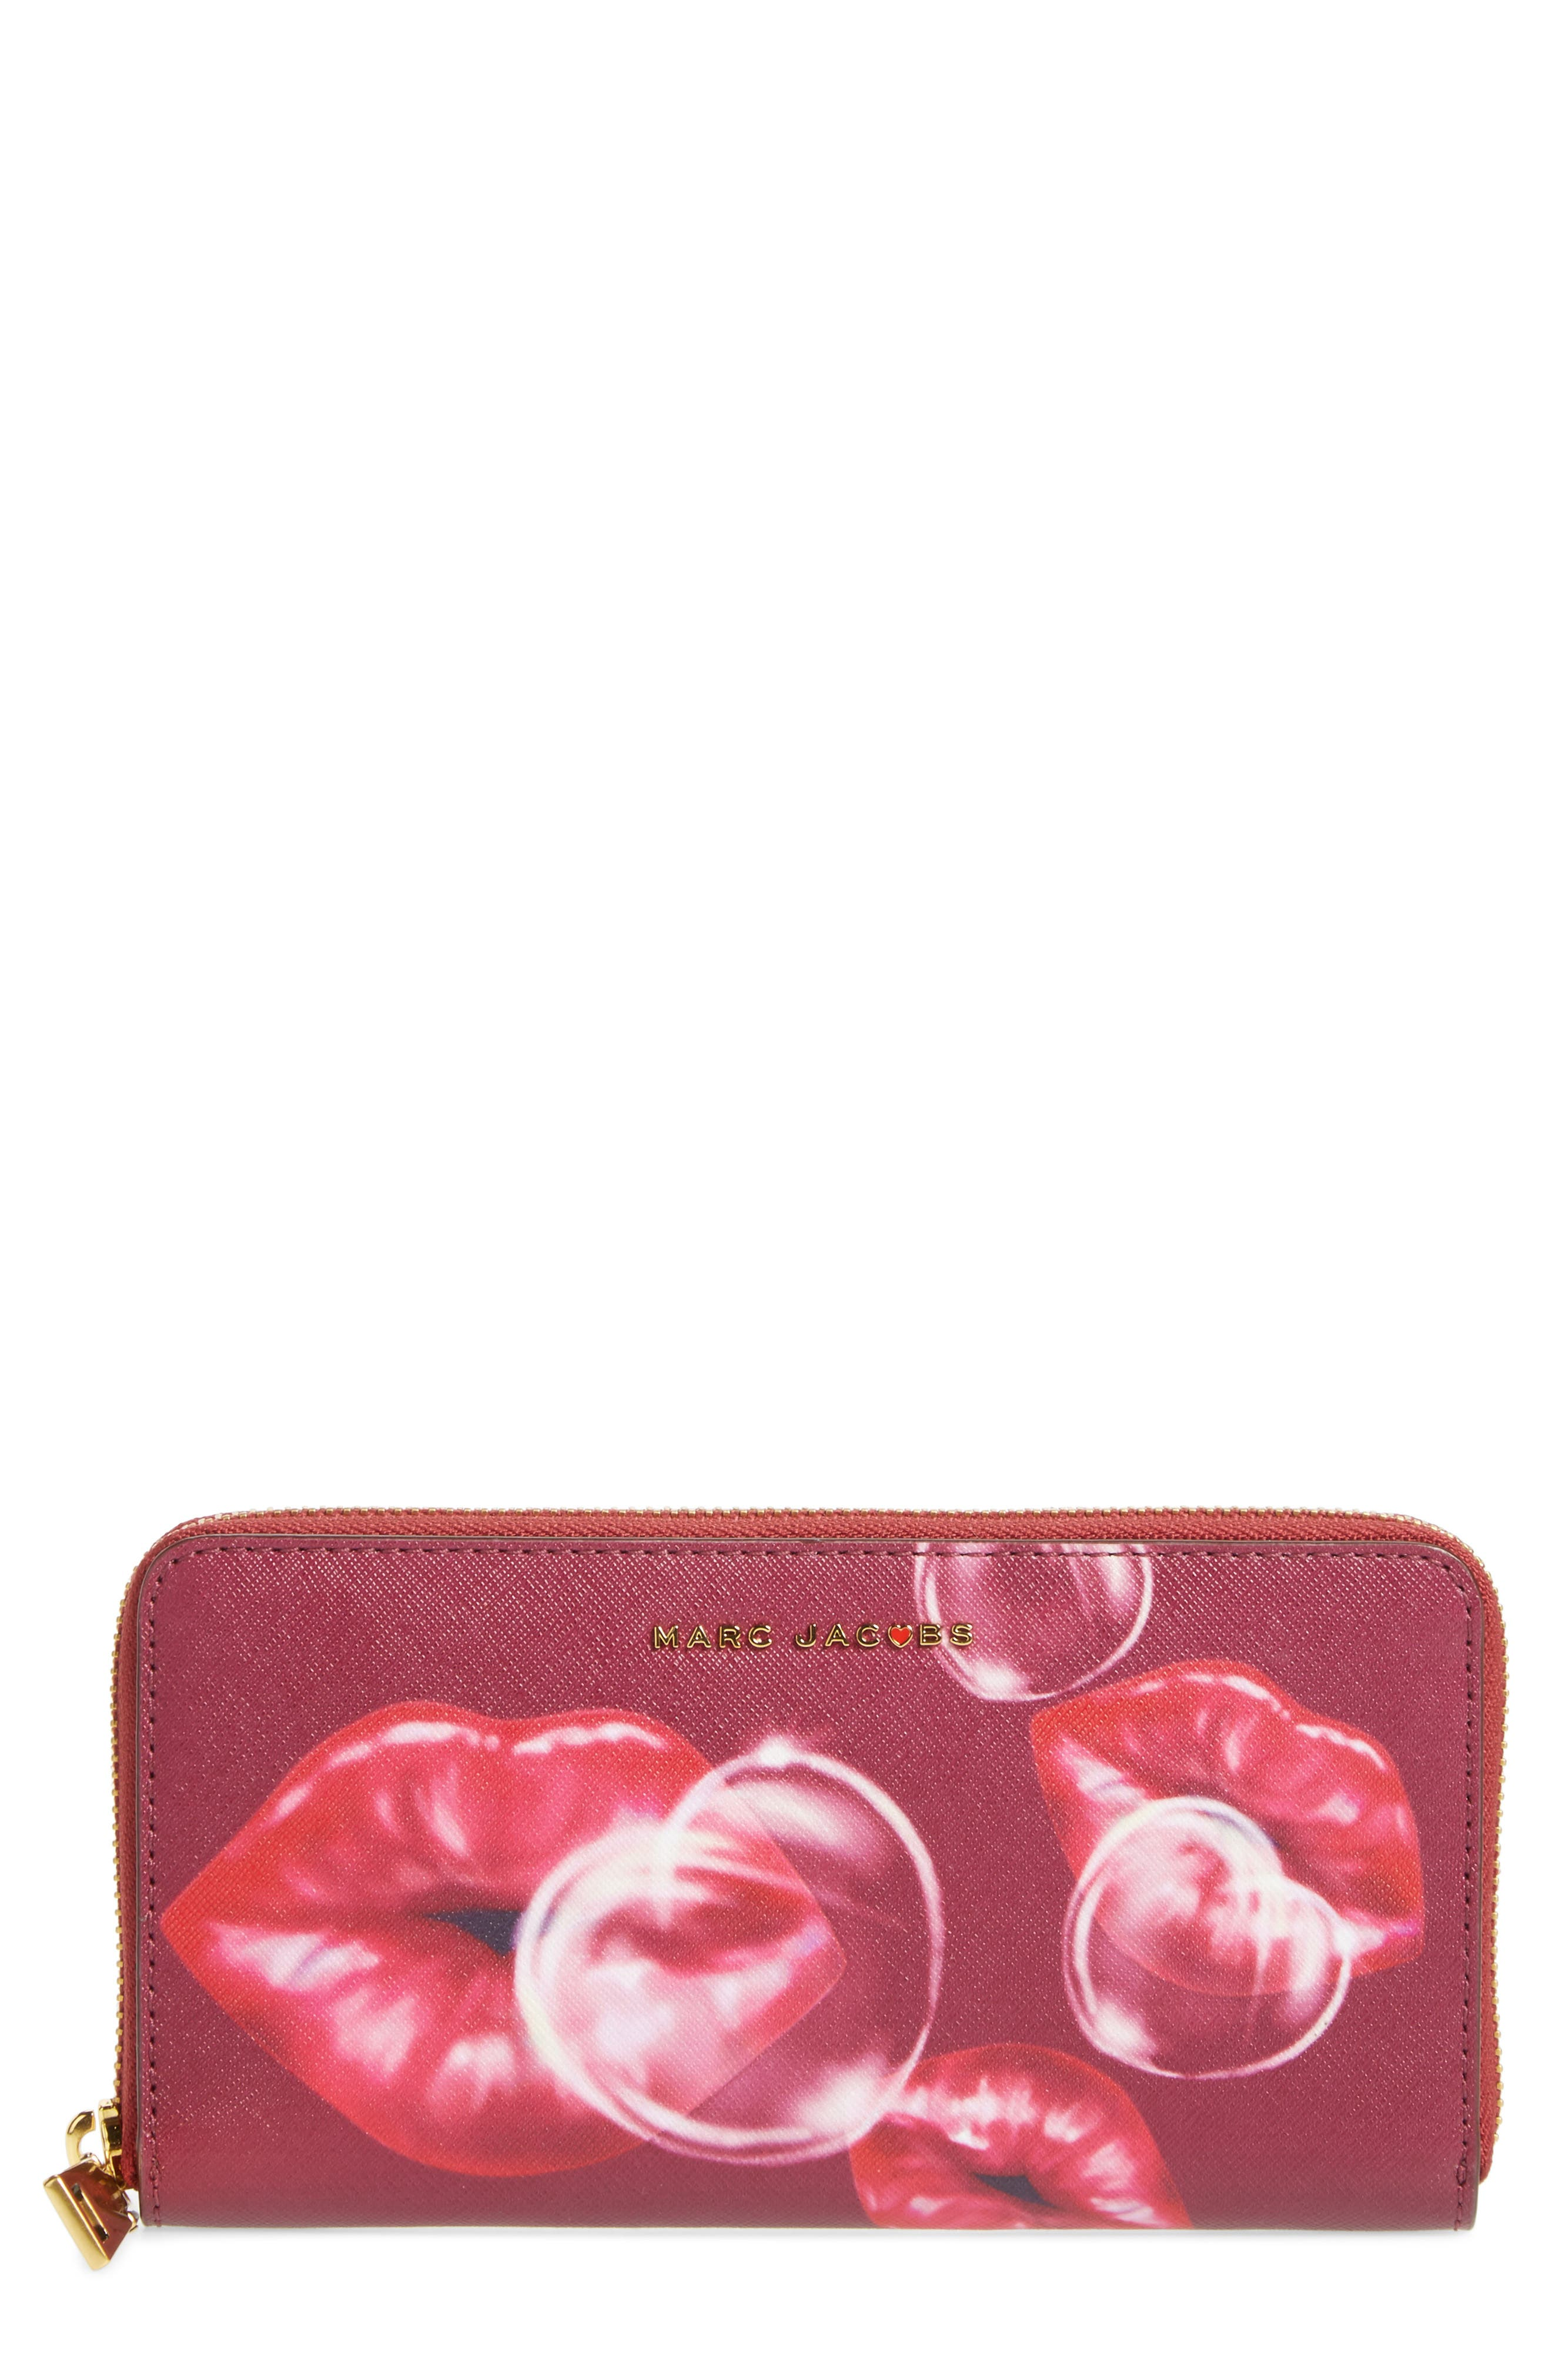 Lips Saffiano Leather Zip Around Wallet,                             Main thumbnail 1, color,                             653